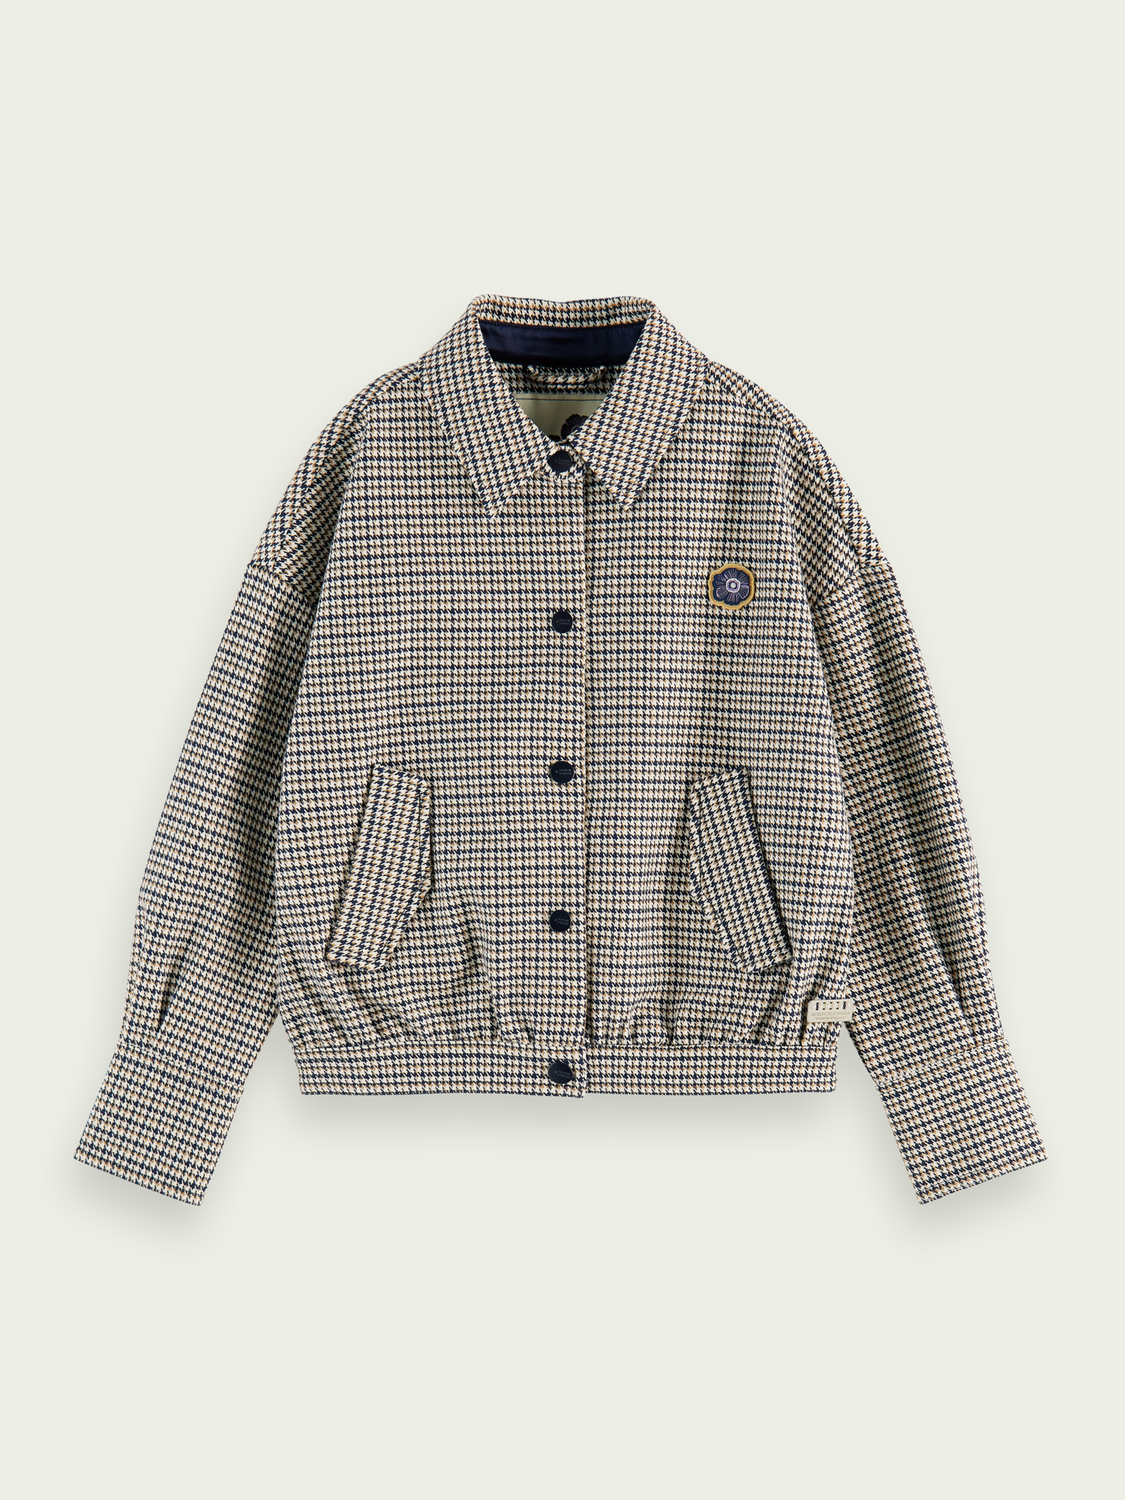 Kids Tailored houndstooth jacket